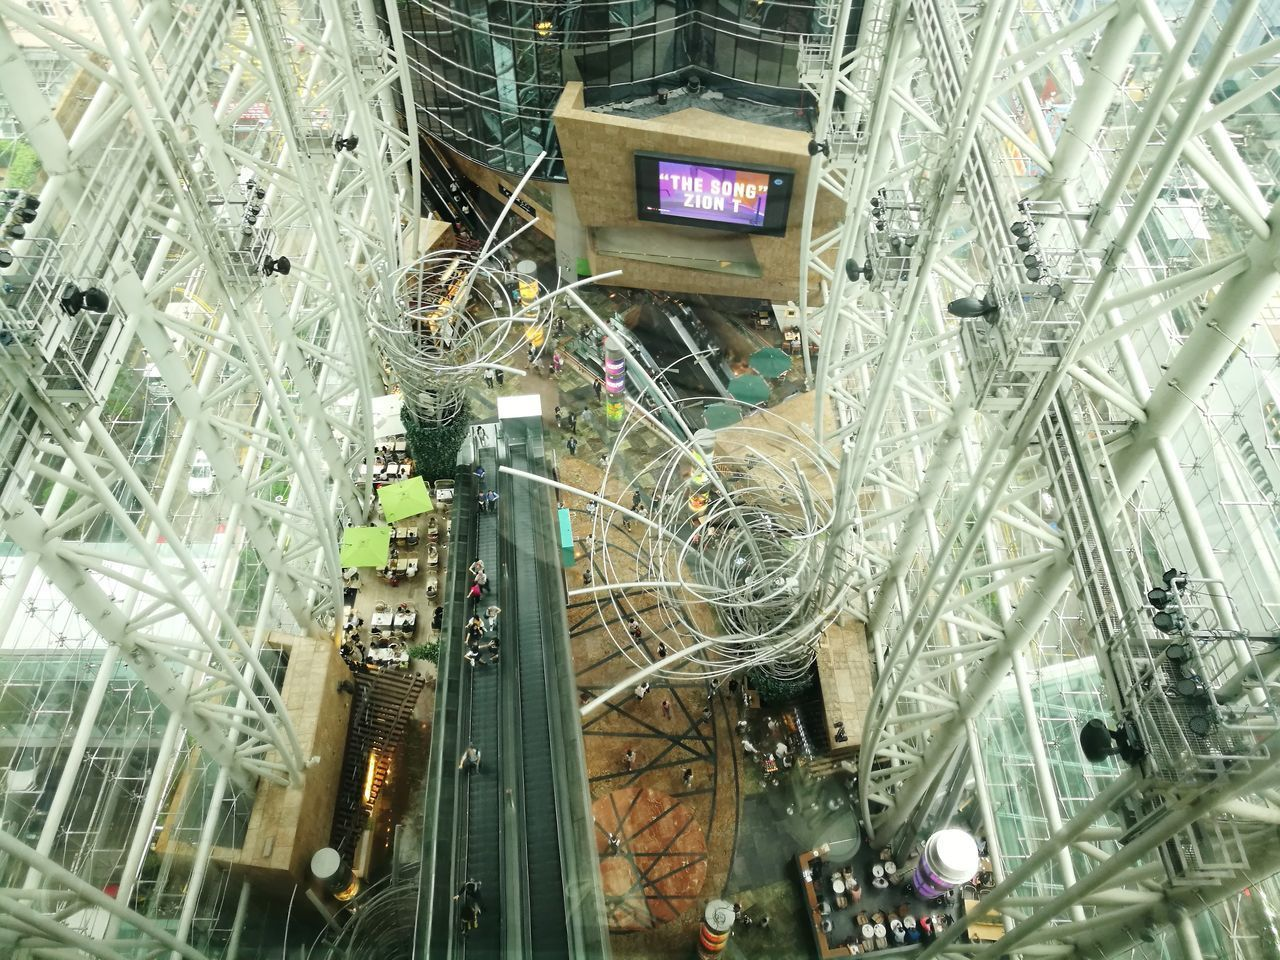 Neighborhood Map Architecture High Angle View No People Day Outdoors Built Structure Architecture Shopping Mall Vacation Destination HongKong Mongkok